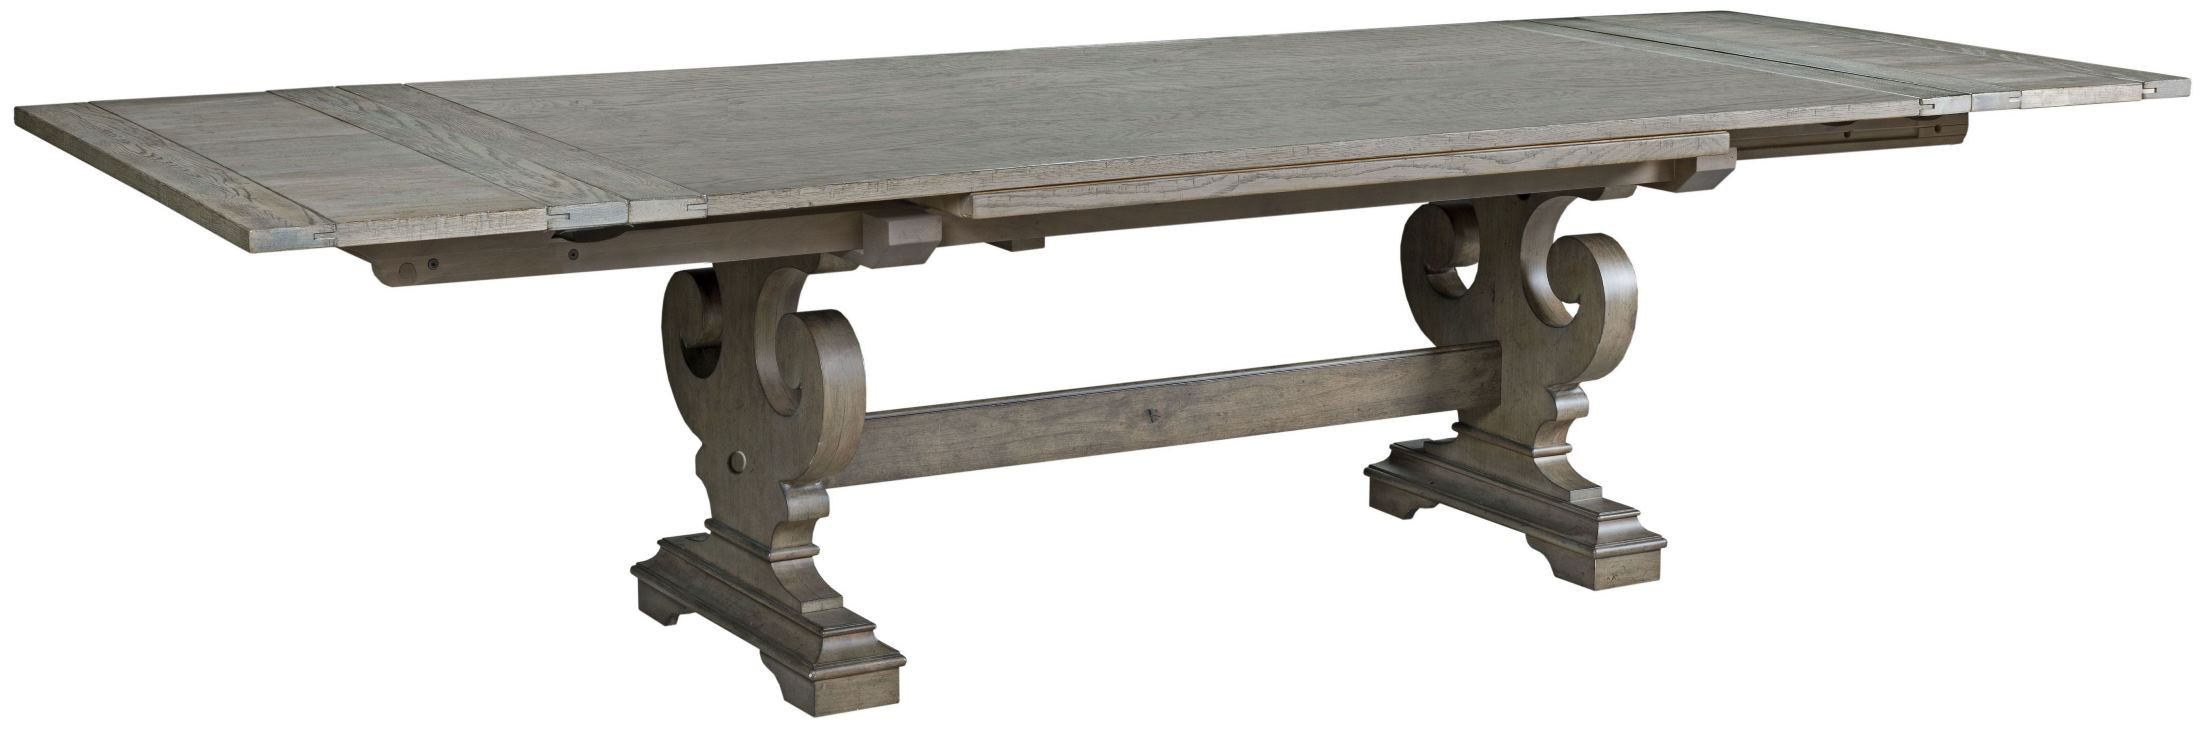 Greyson crawford refractory dining table 608 744p kincaid for Greyson dining table